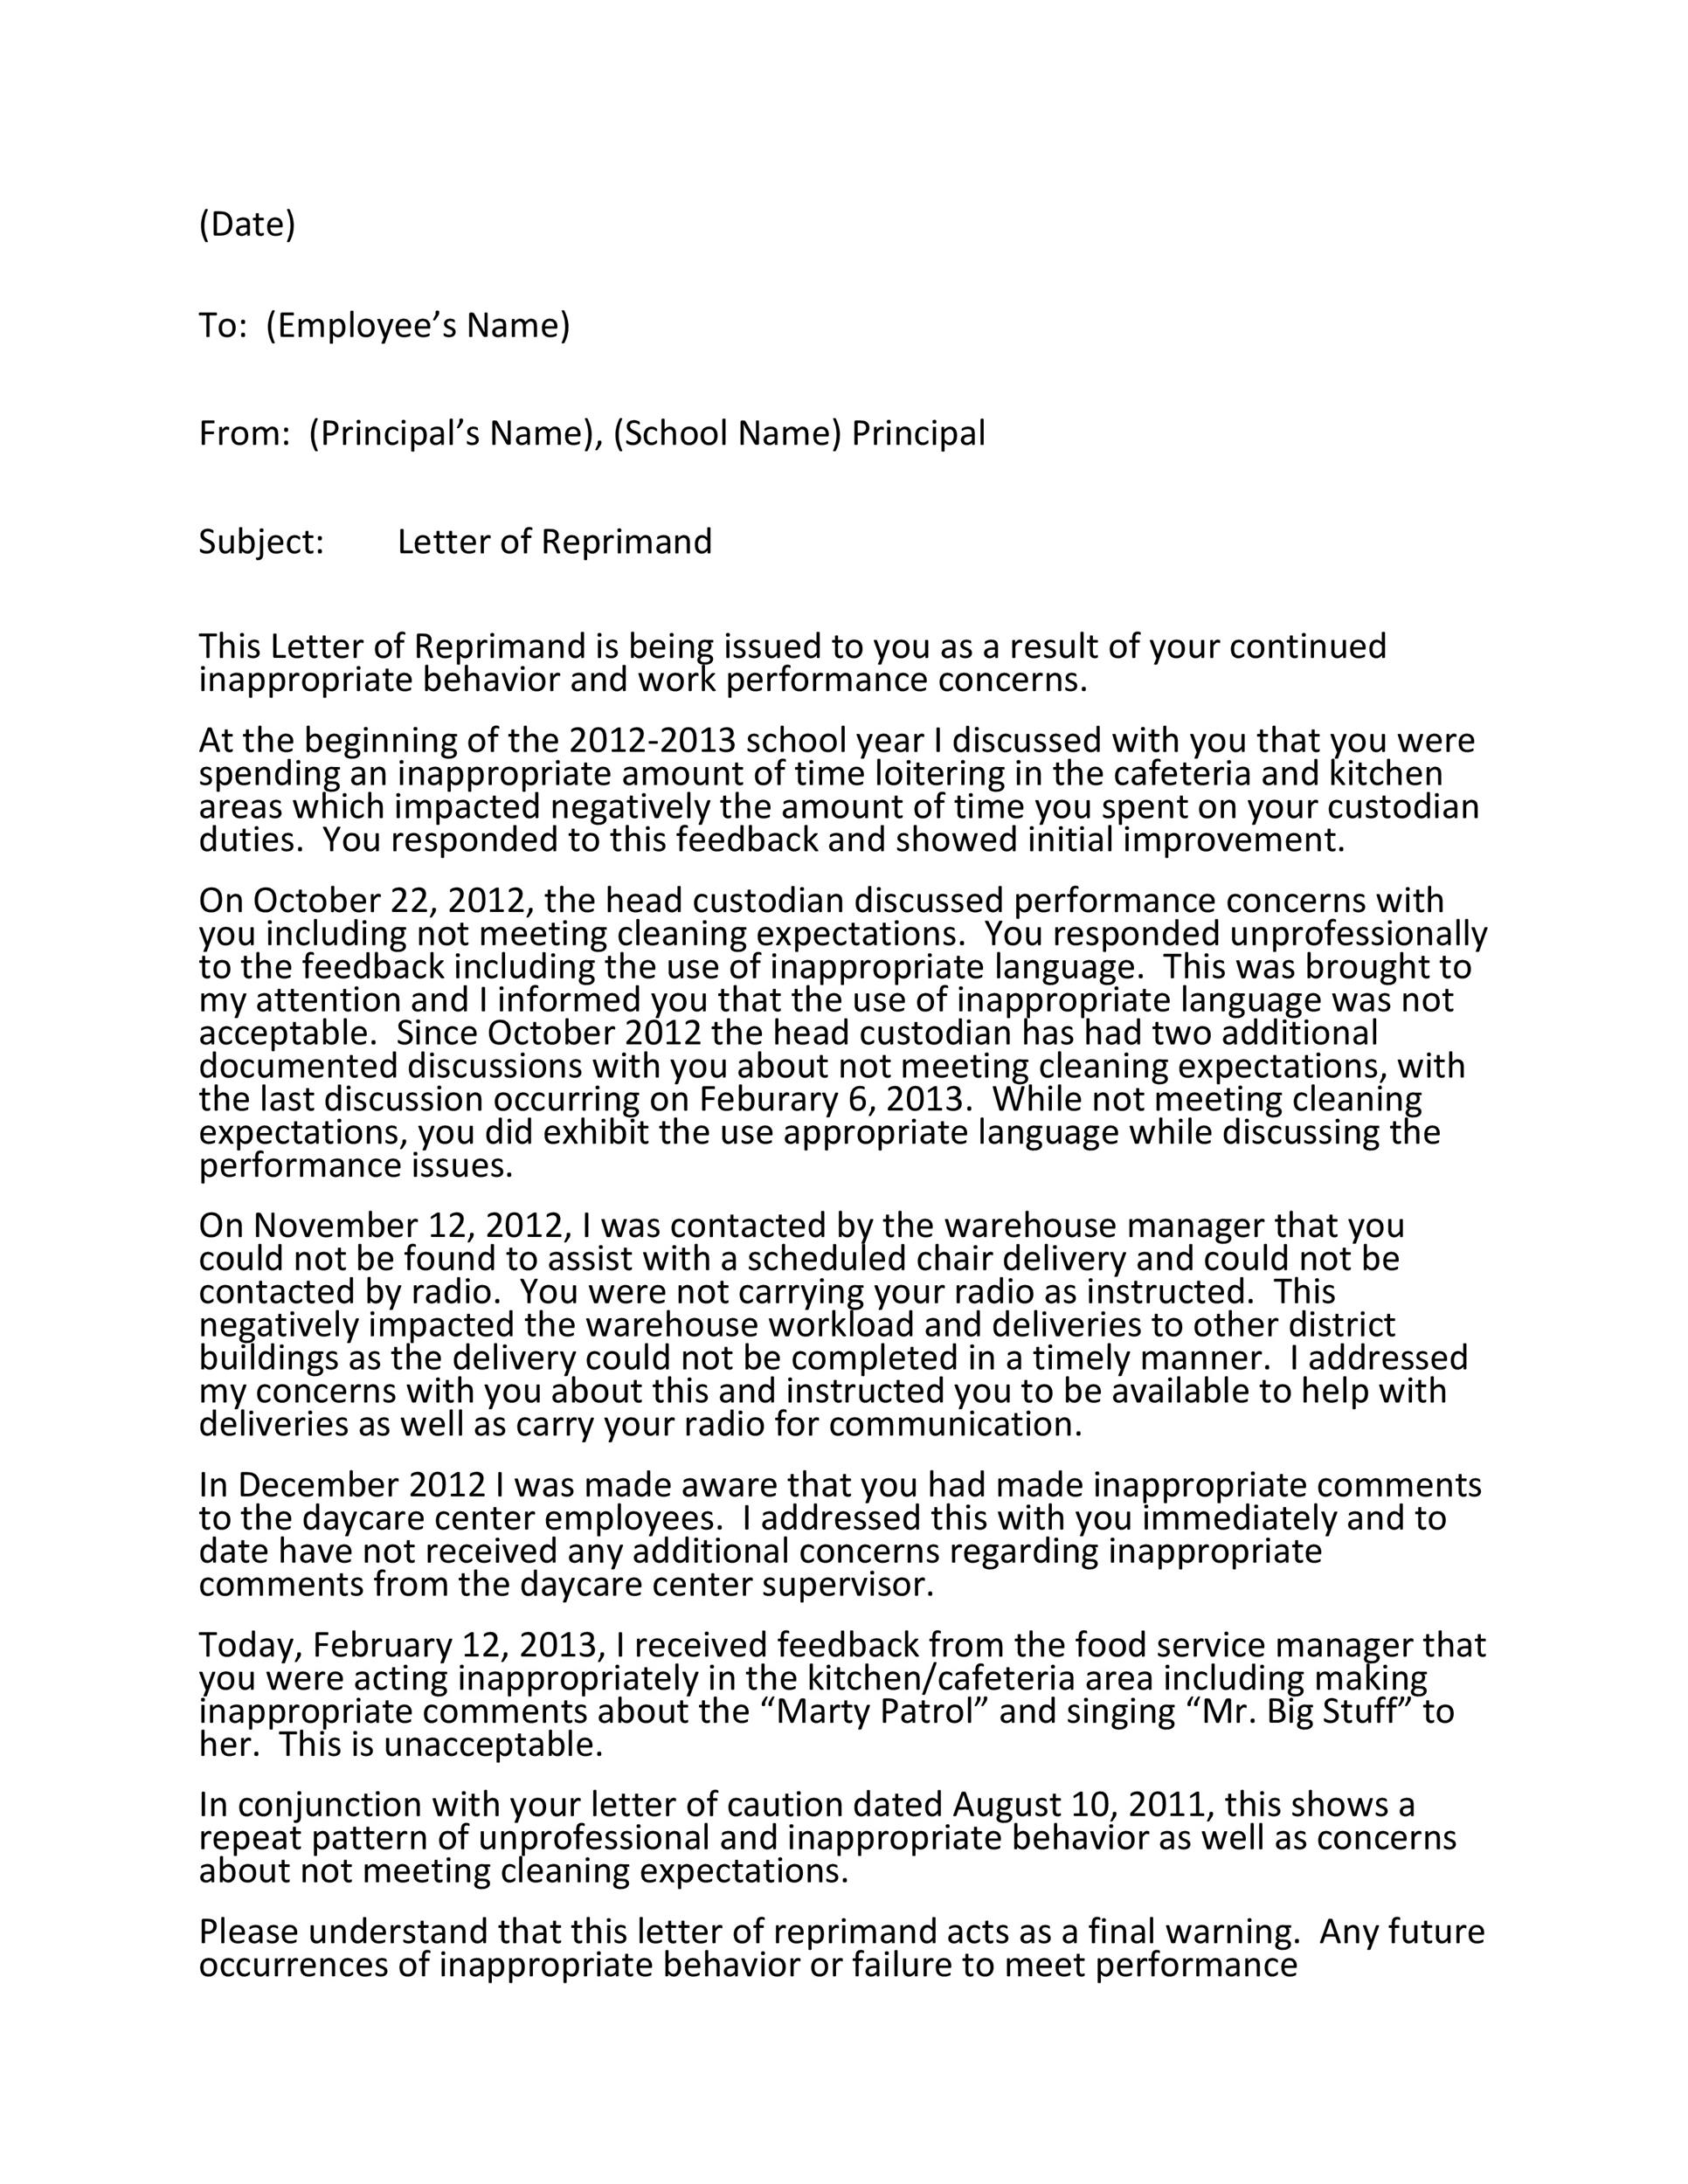 Free letter of reprimand 08